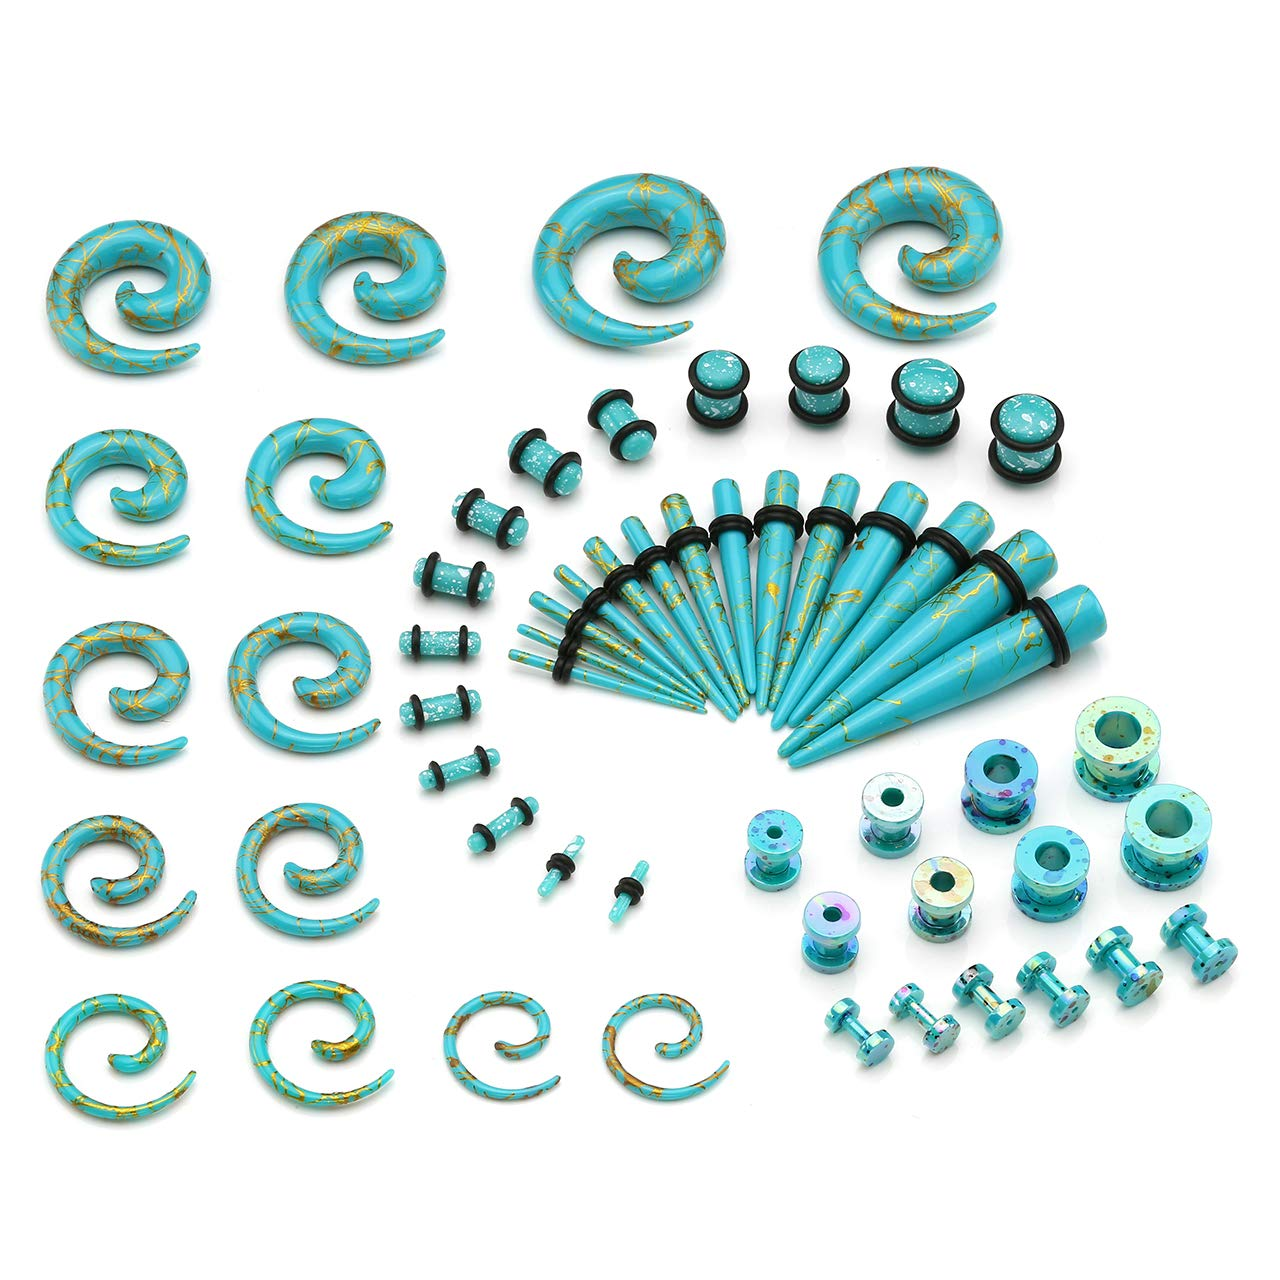 Jovivi 56pcs Turquoise Acrylic Ear Stretching Kit 8G-1/2 - Tapers and Plugs + Spiral Snail Plugs + Flesh Tunnels - Ear Gauges Expander Set Body Piercing Jewelry by Jovivi